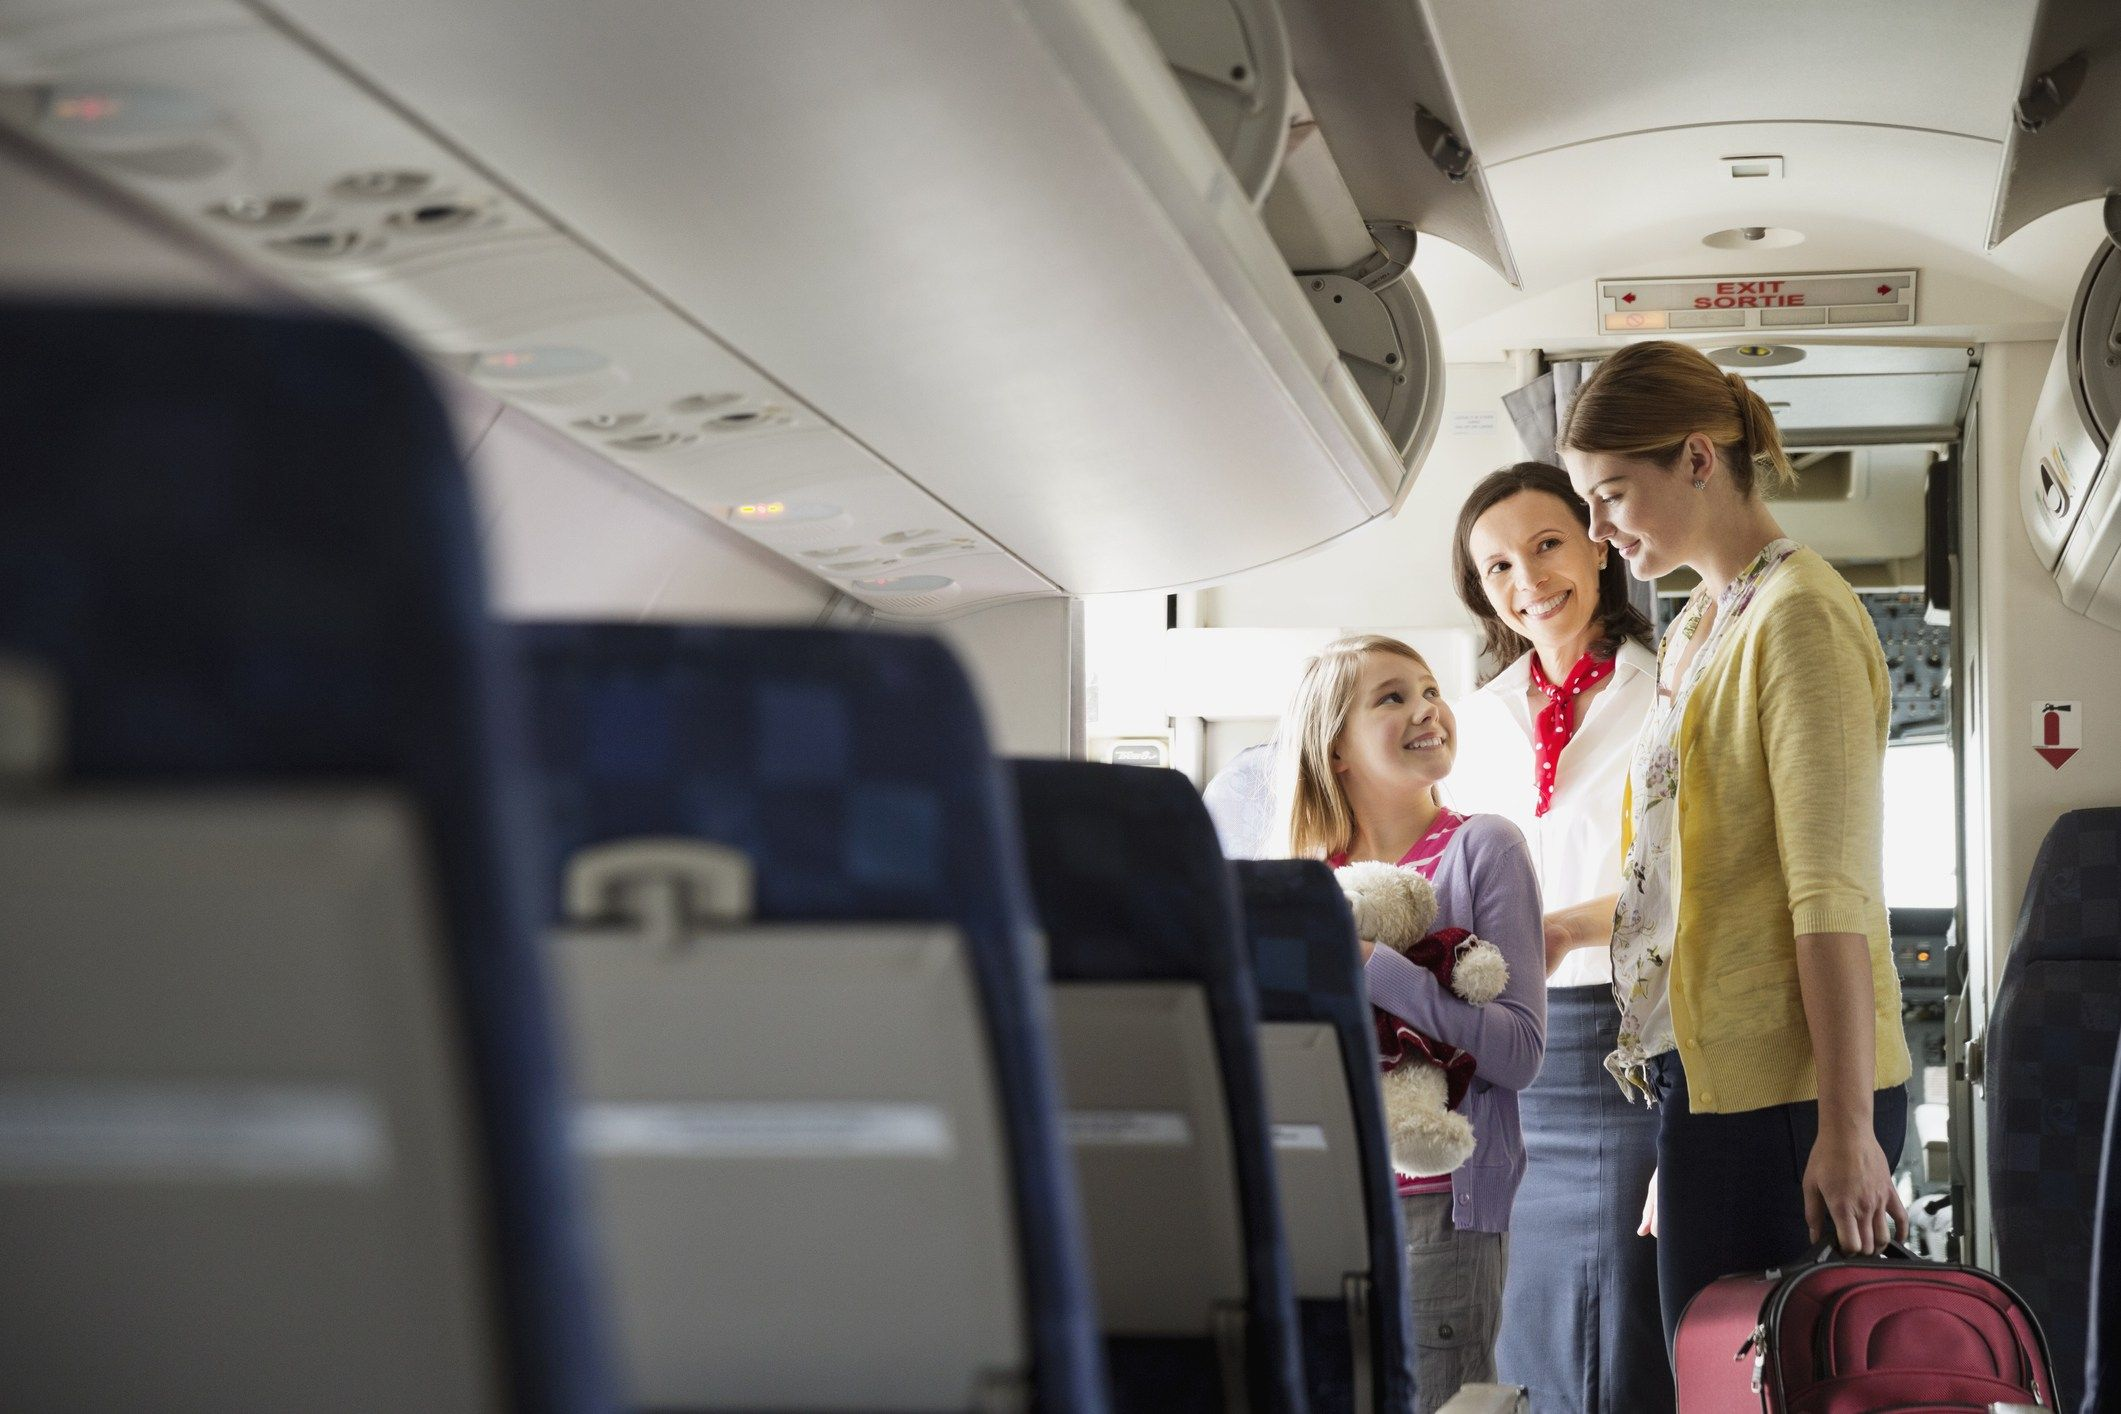 Are airlines purposely splitting up families to make more